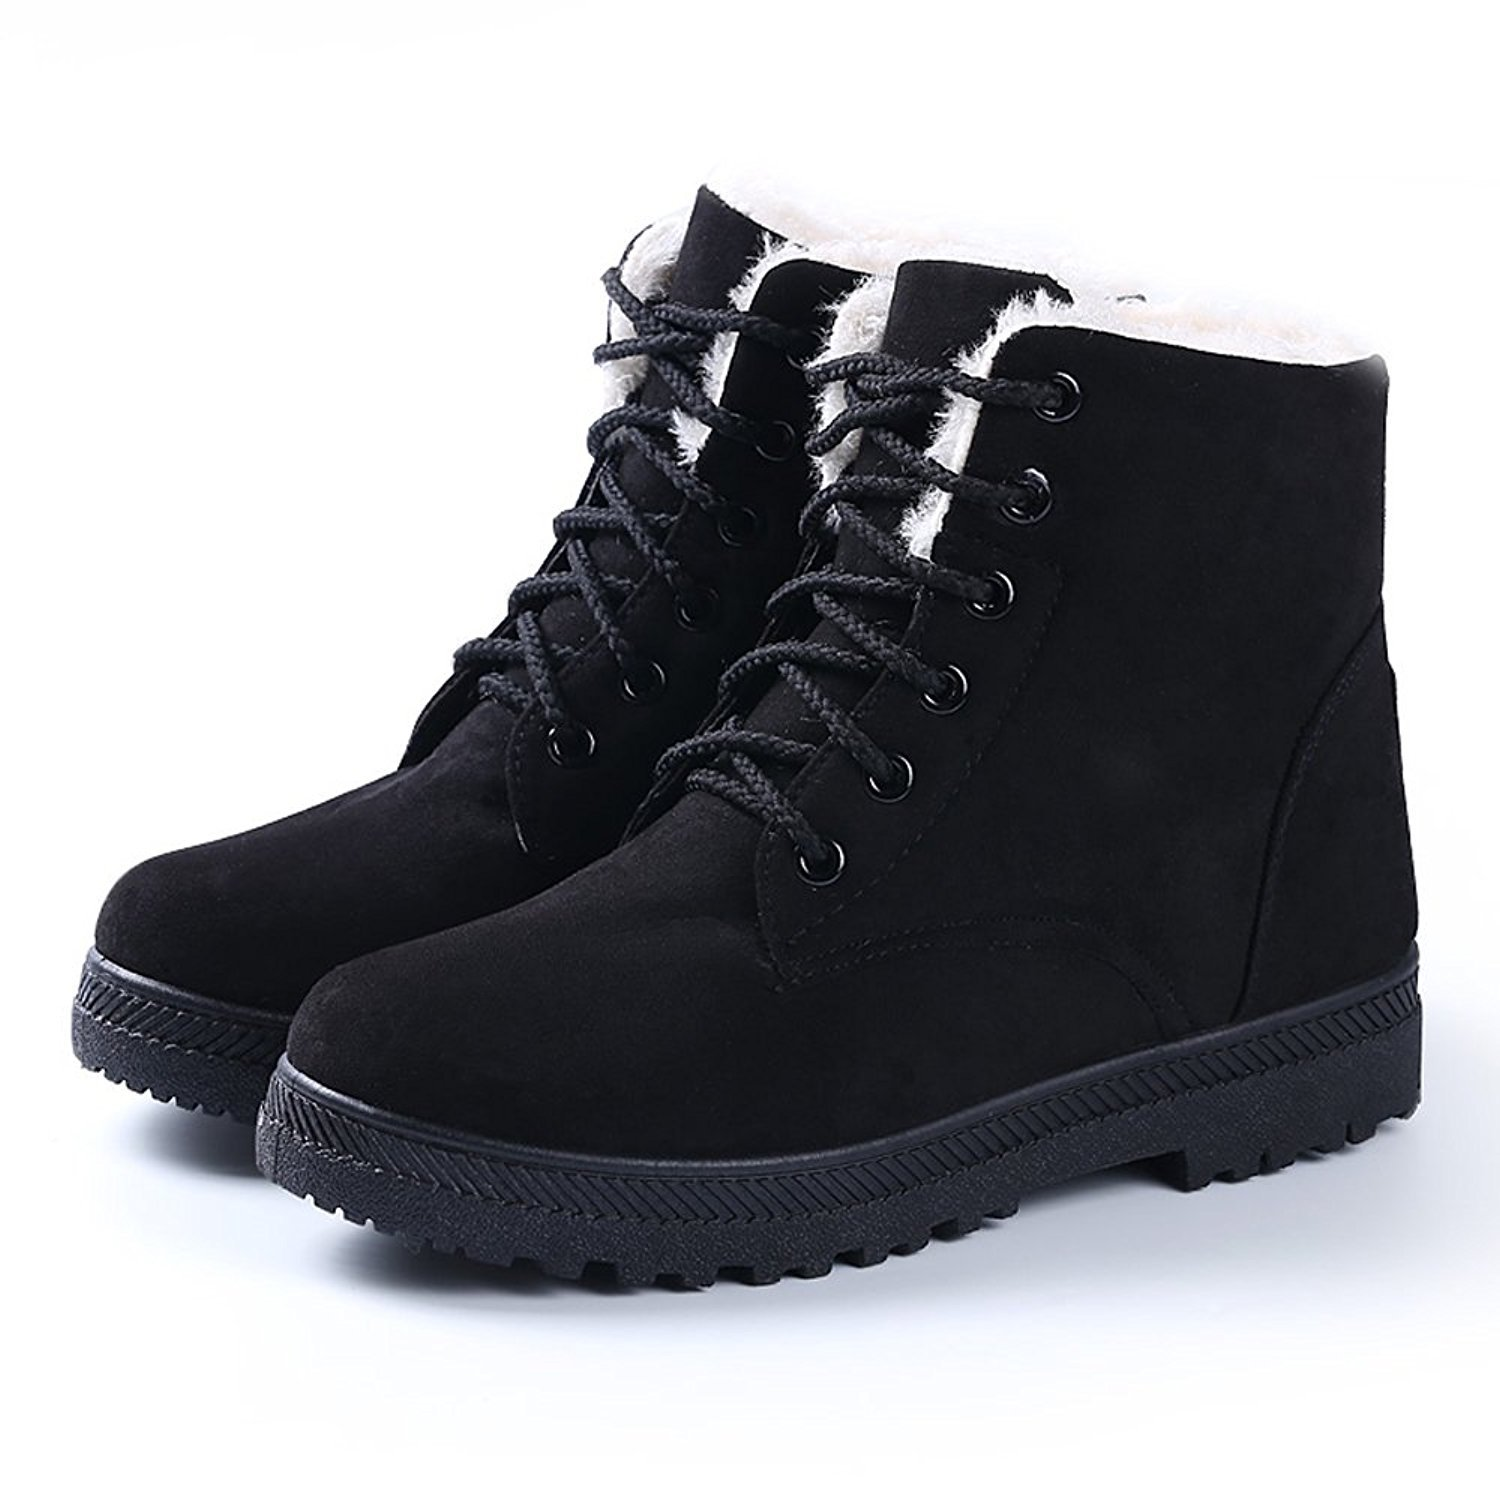 NOT100 Womens Snow Boots for Winter Ankle Boots Combat Walking Shoes Booties Black Vegan Size 7 Wide